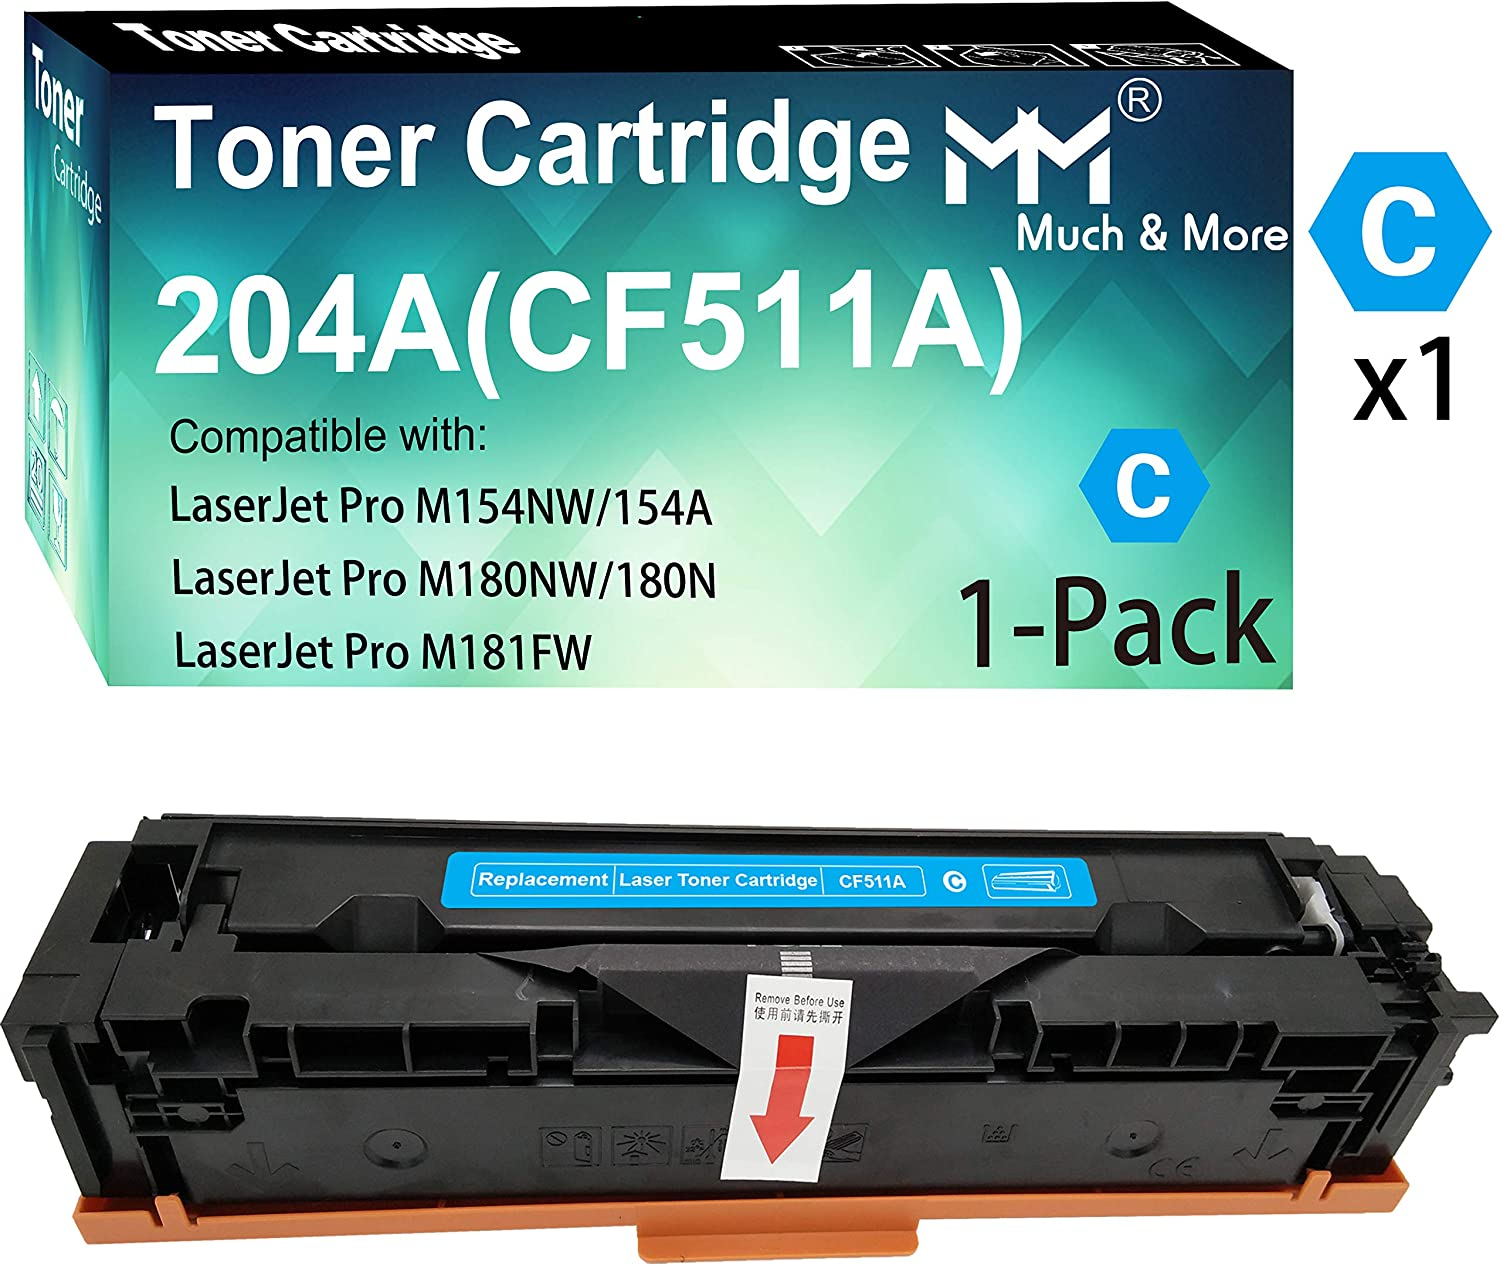 (1-Pack, Cyan) Compatible 511A CF511A Toner Cartridge 204A Used for HP Laserjet Pro MFP M180nw M180n M181fw M181 M154nw M154a Printer, by MuchMore